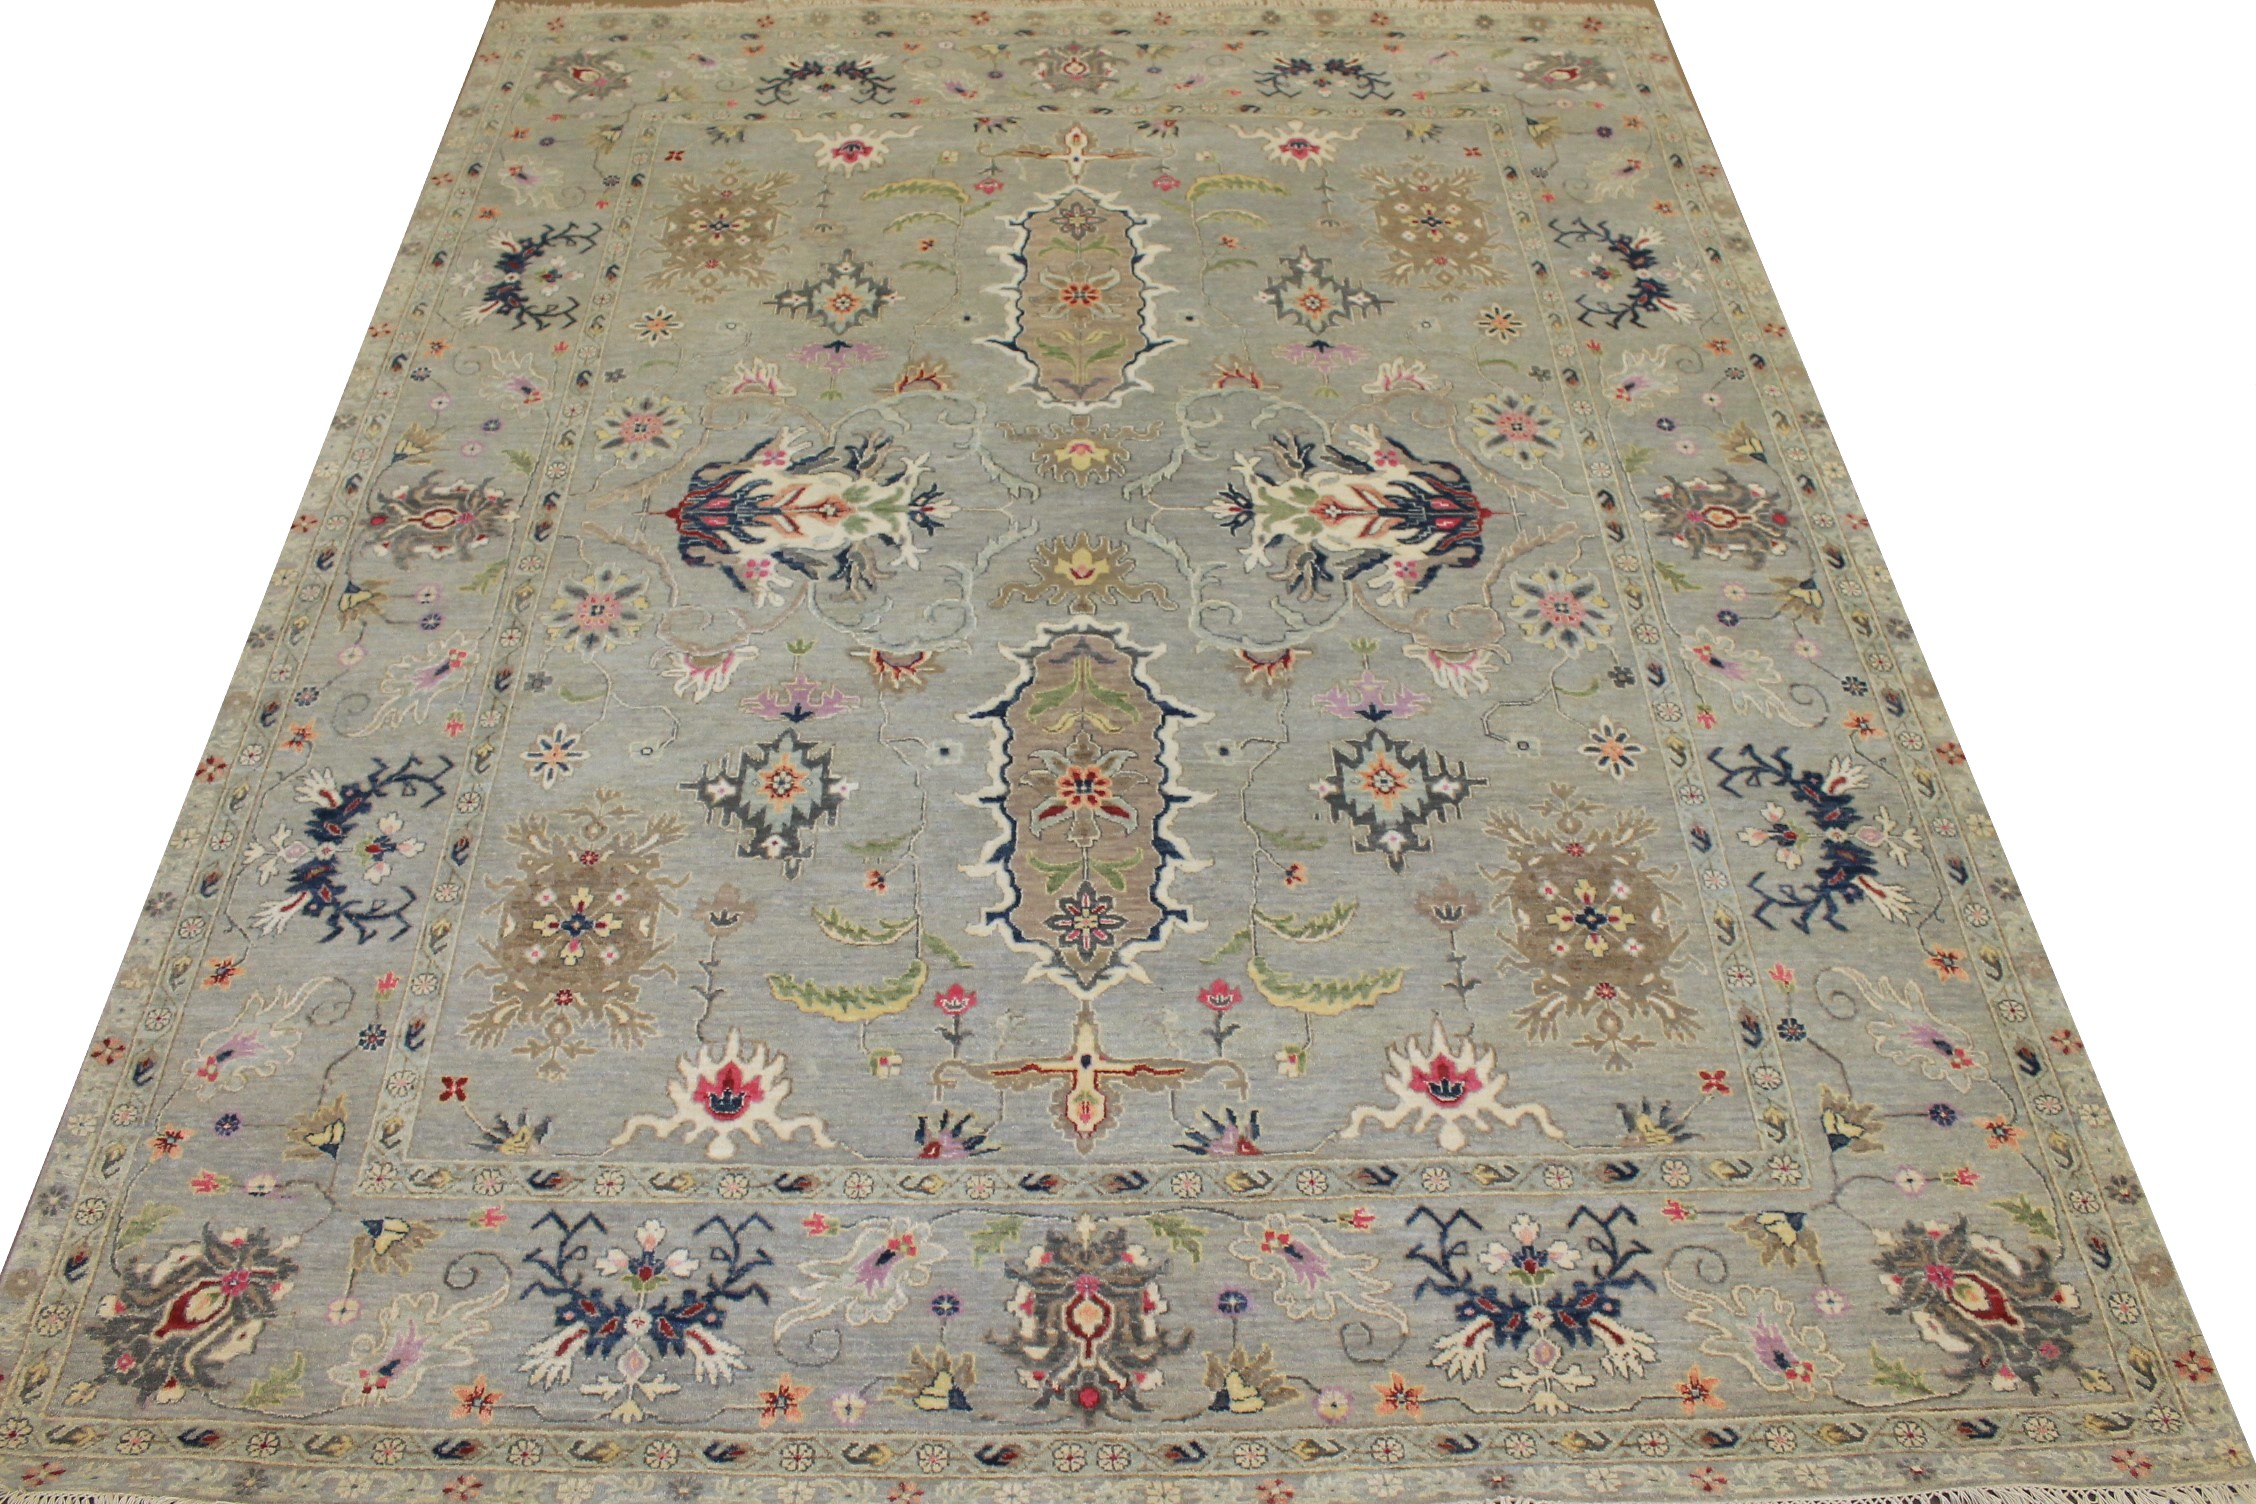 8x10 Traditional Hand Knotted Wool Area Rug - MR025001